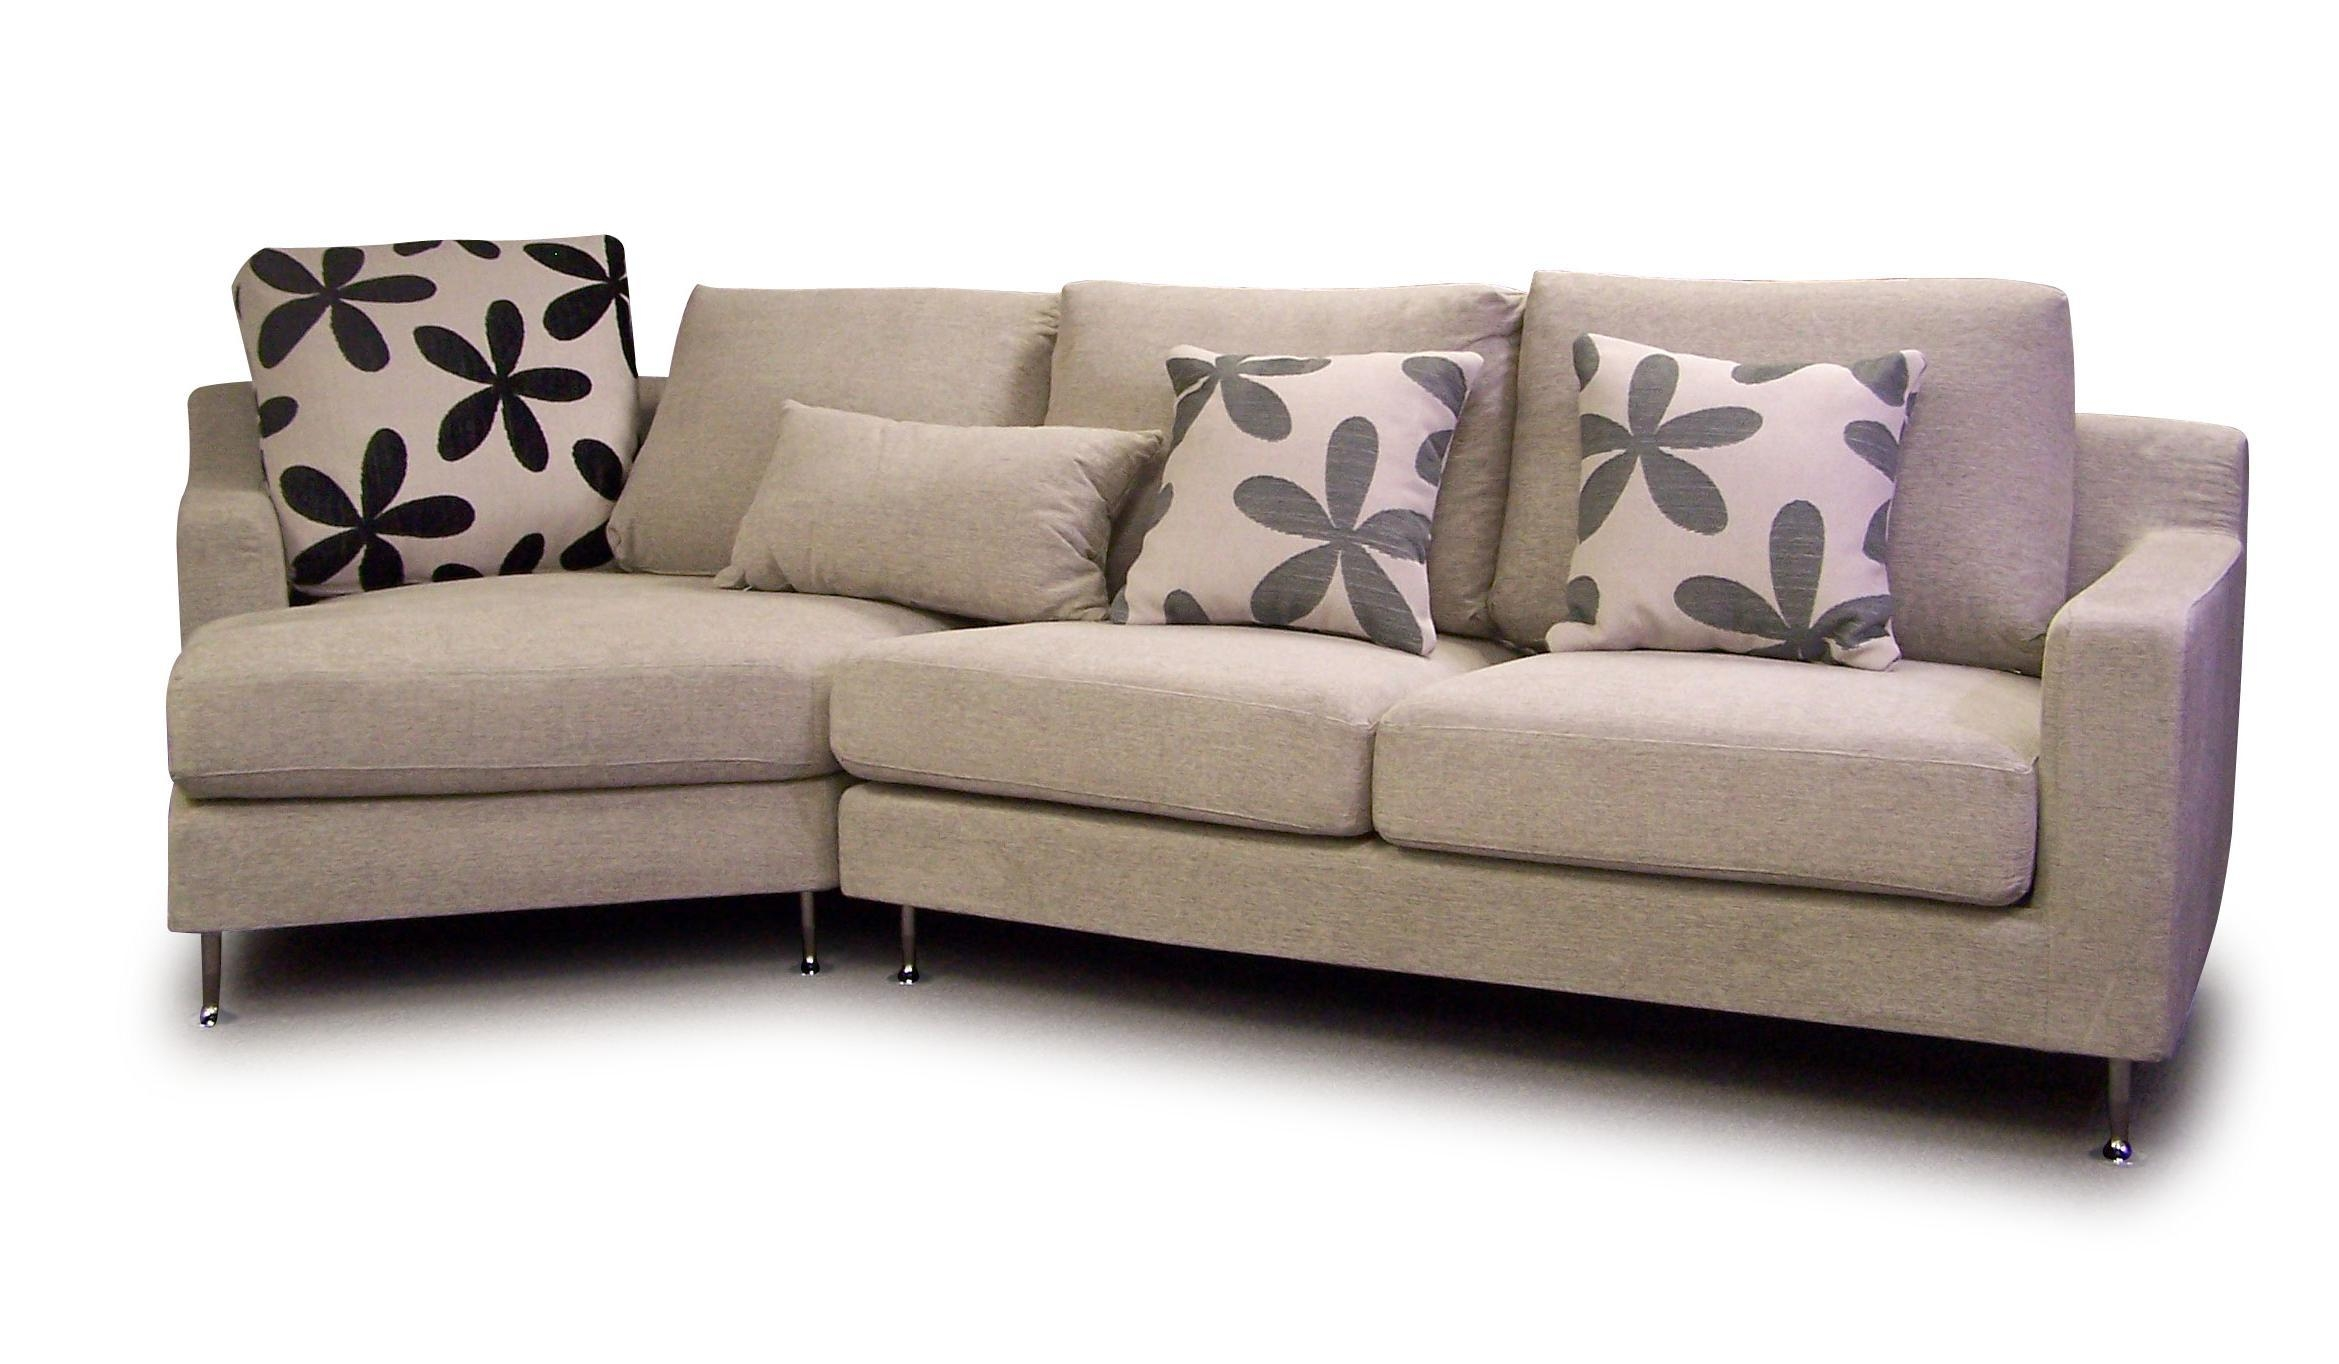 Furniture: Cheap Sectional Sofas In Cream Plus Floral Cushions For Regarding Floral Sofas (View 4 of 20)